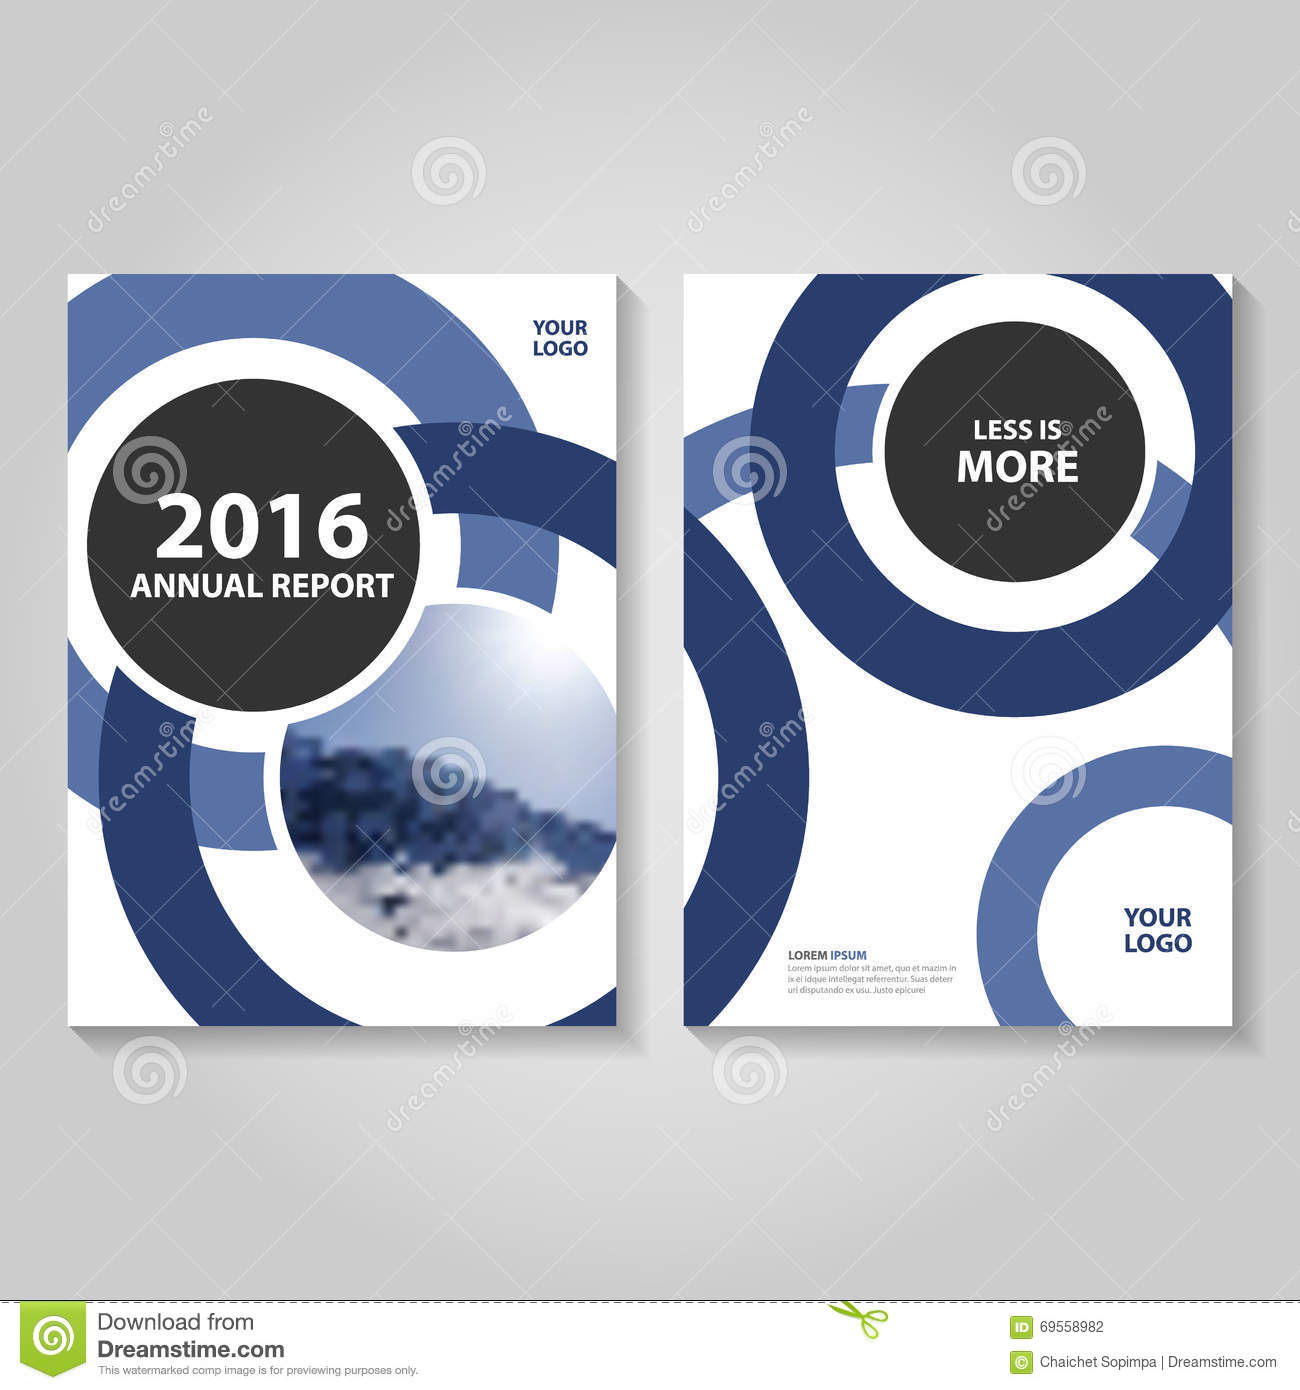 circle brochure template - circle blue annual report leaflet brochure flyer template